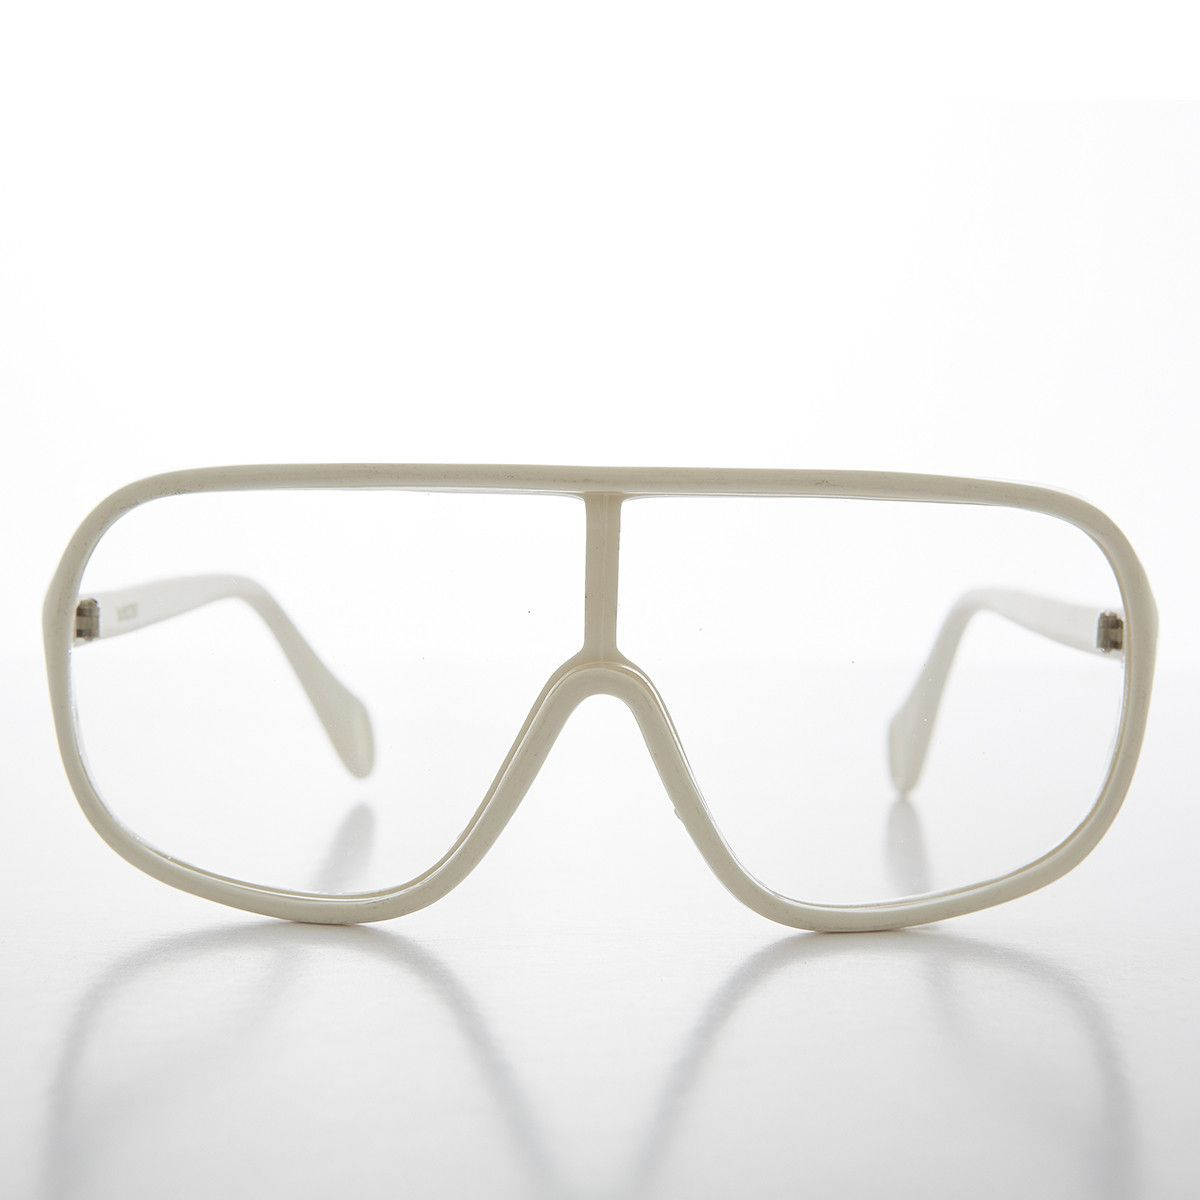 6979172aaa10 Hip-Hop Wrap 90s Vintage Safety Clear Lens Glasses - Zion